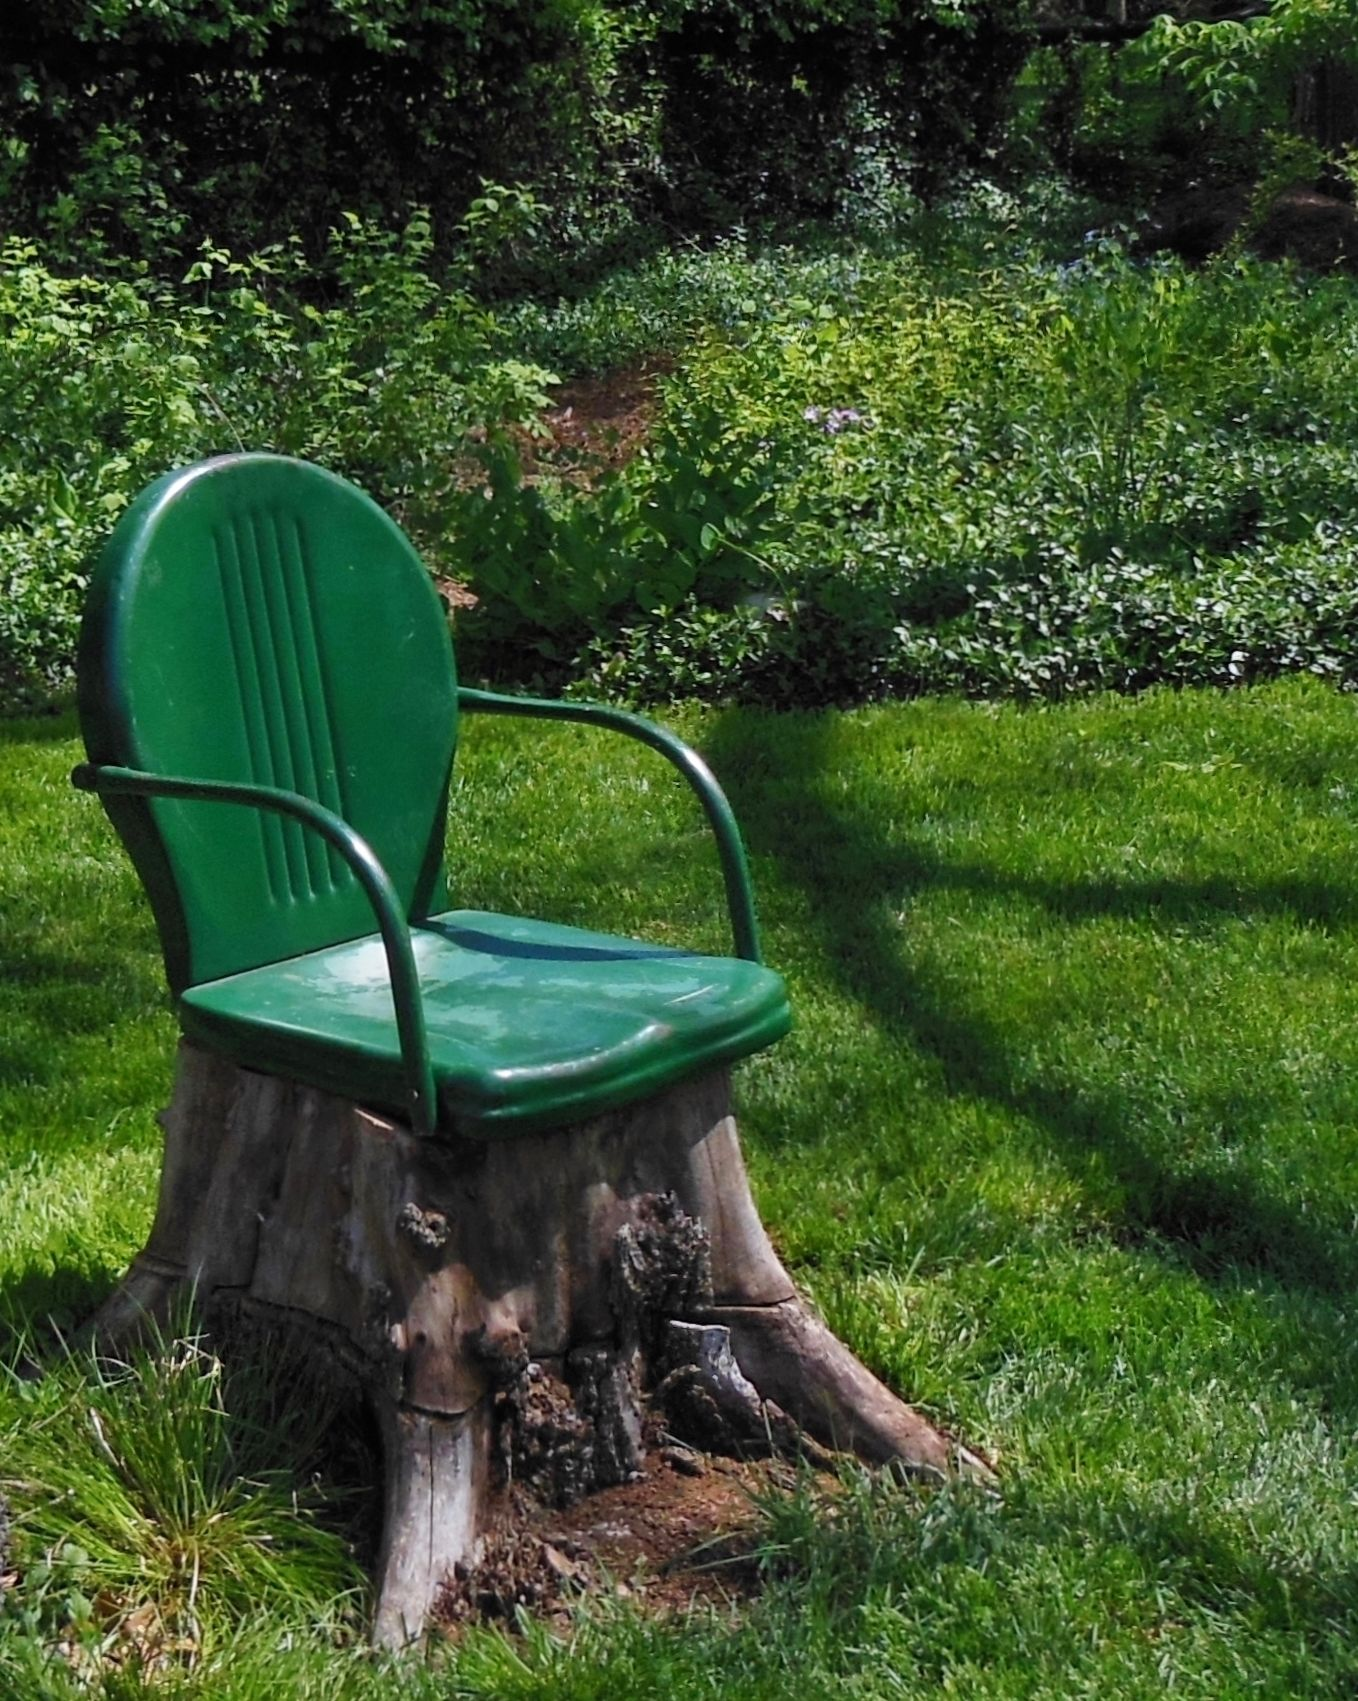 Unsightly Tree Stump Metal Chair With Broken